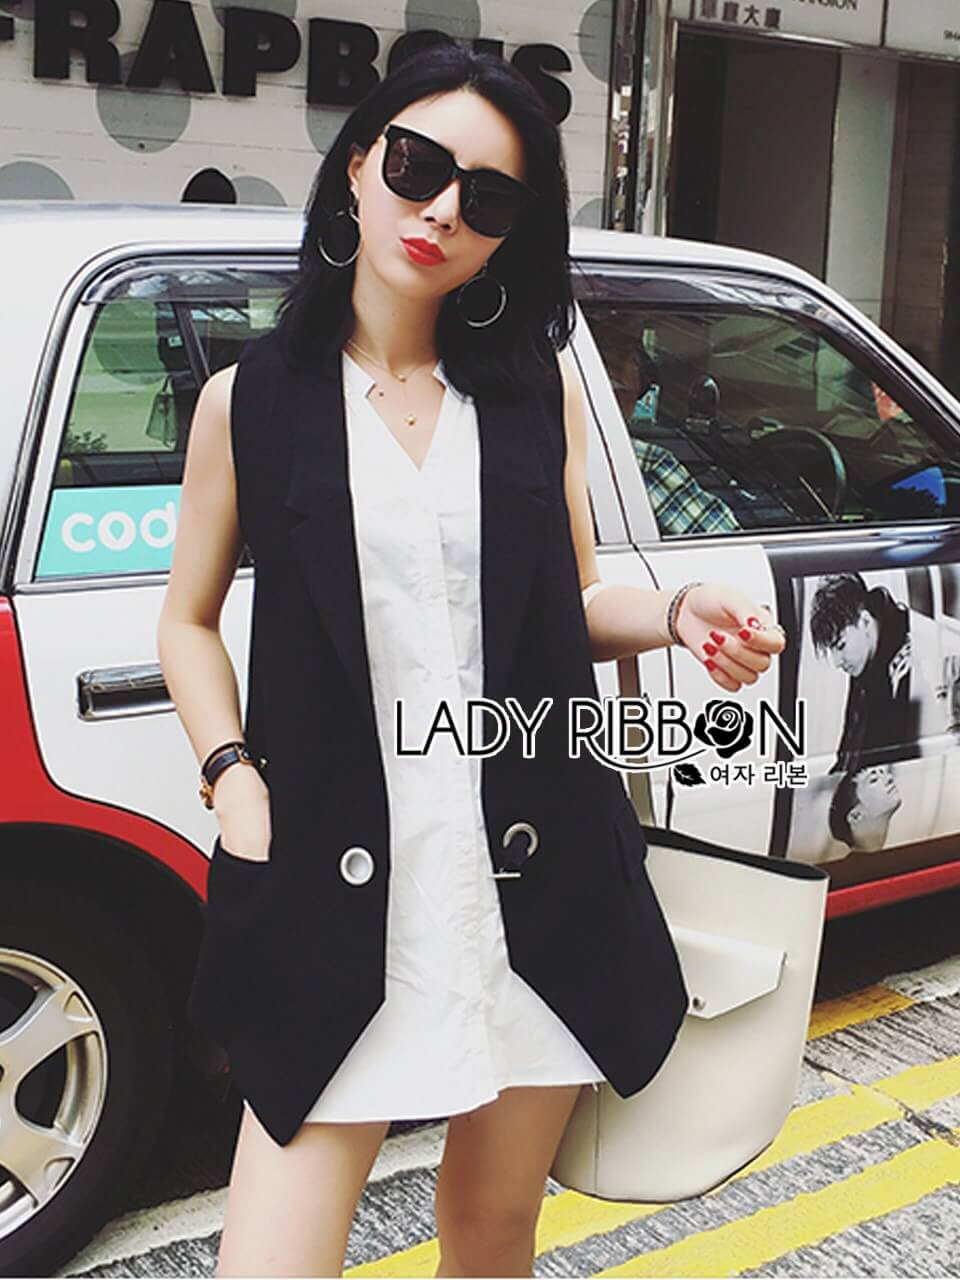 &#x1F380 Lady Ribbon's Made &#x1F380 Lady Alice Smart Casual Sleeveless Black Suit and Long White Shirt Set